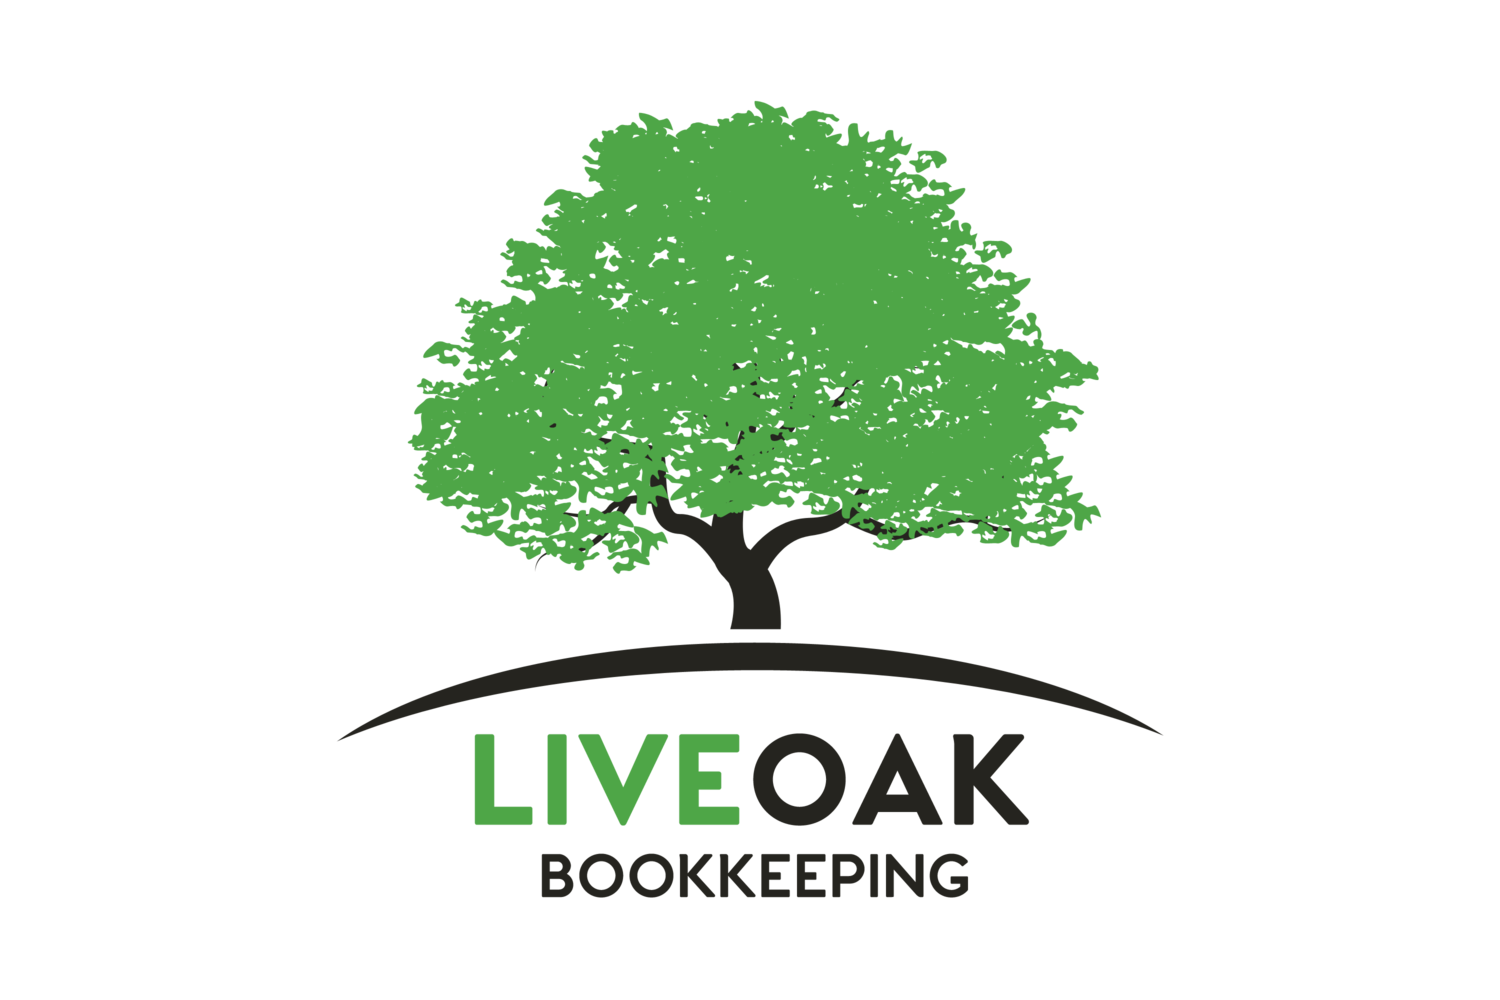 Live Oak Bookkeeping